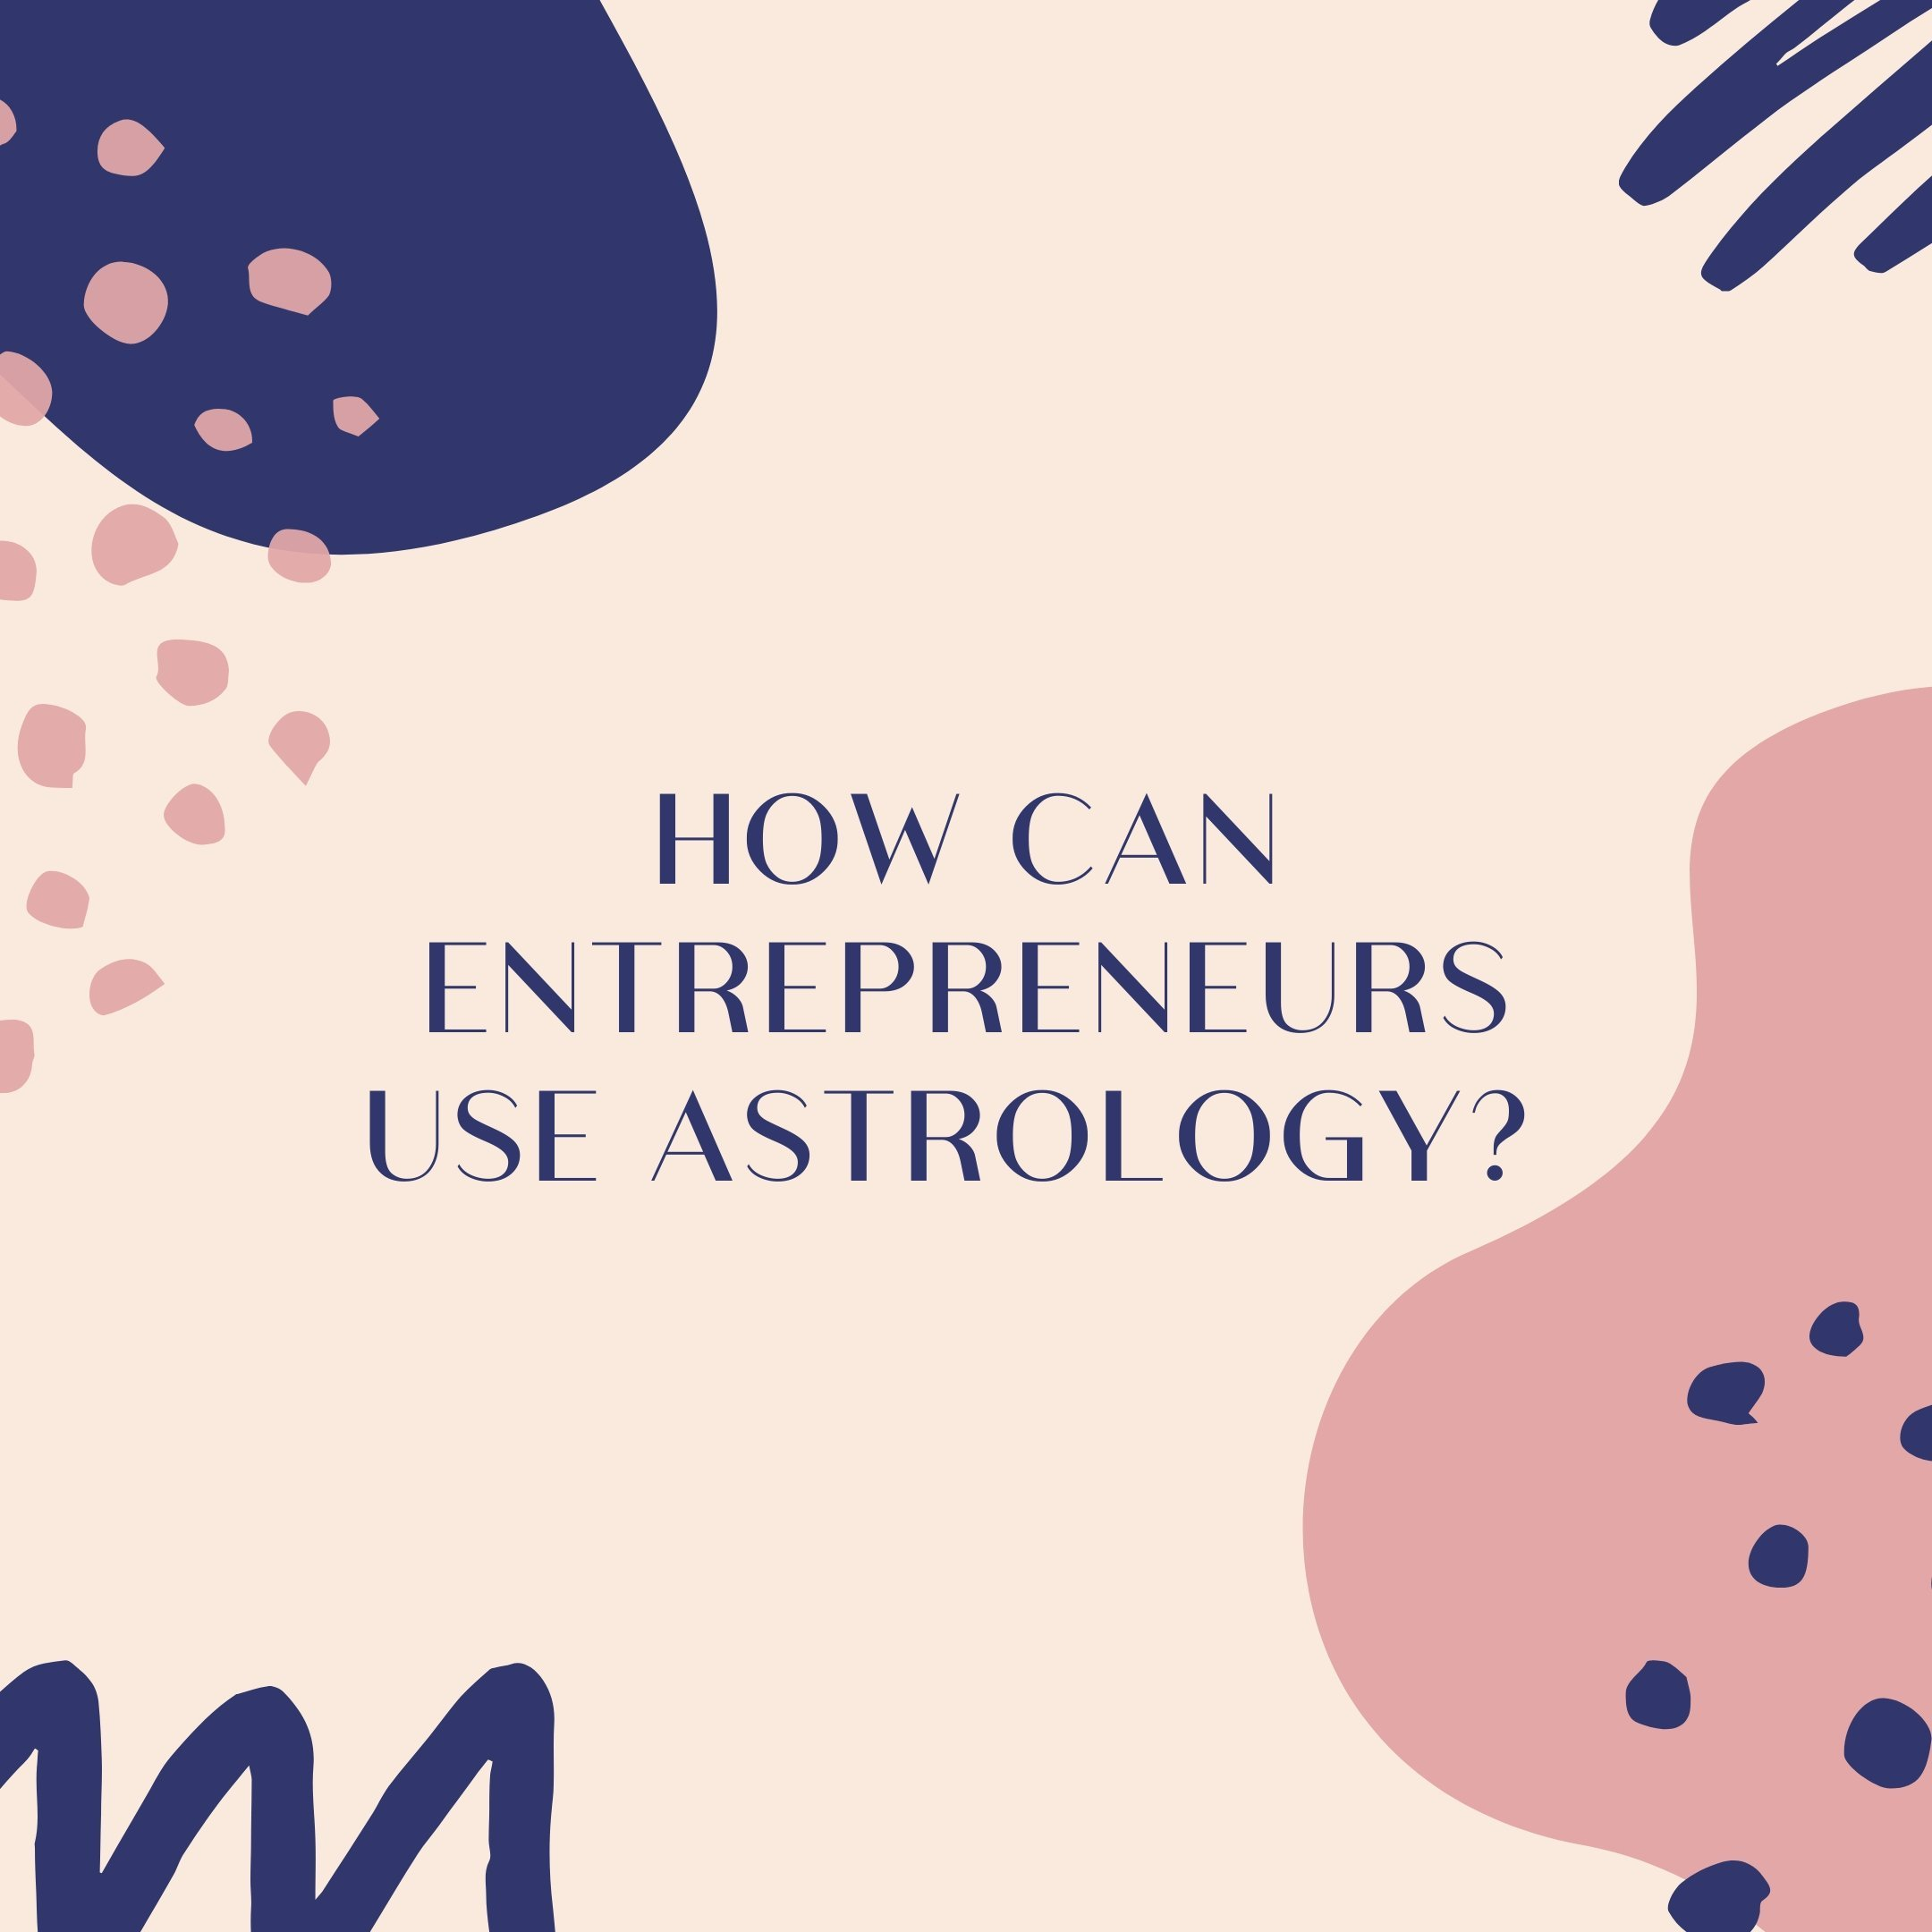 How can entrepreneurs use astrology